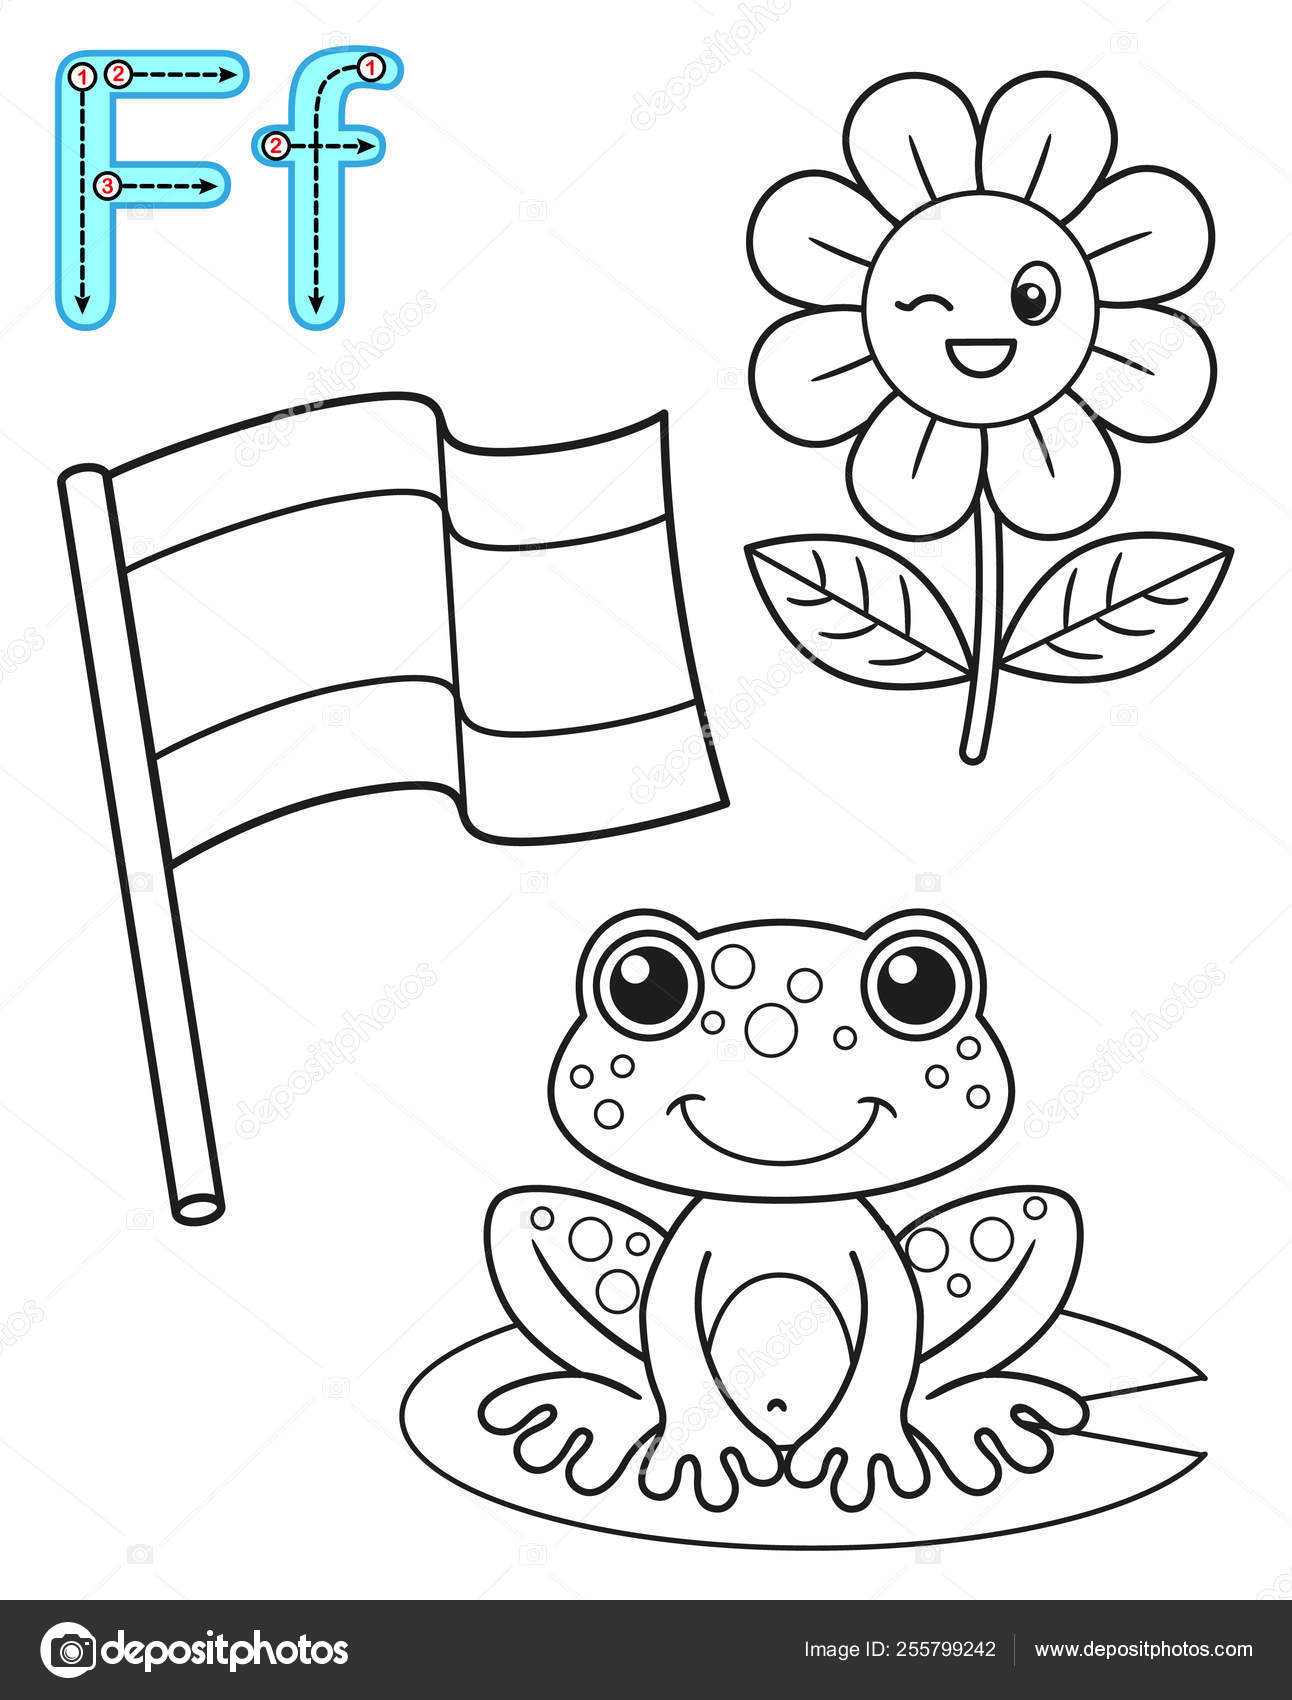 Top 10 Free Printable Letter F Coloring Pages Online | 1700x1292